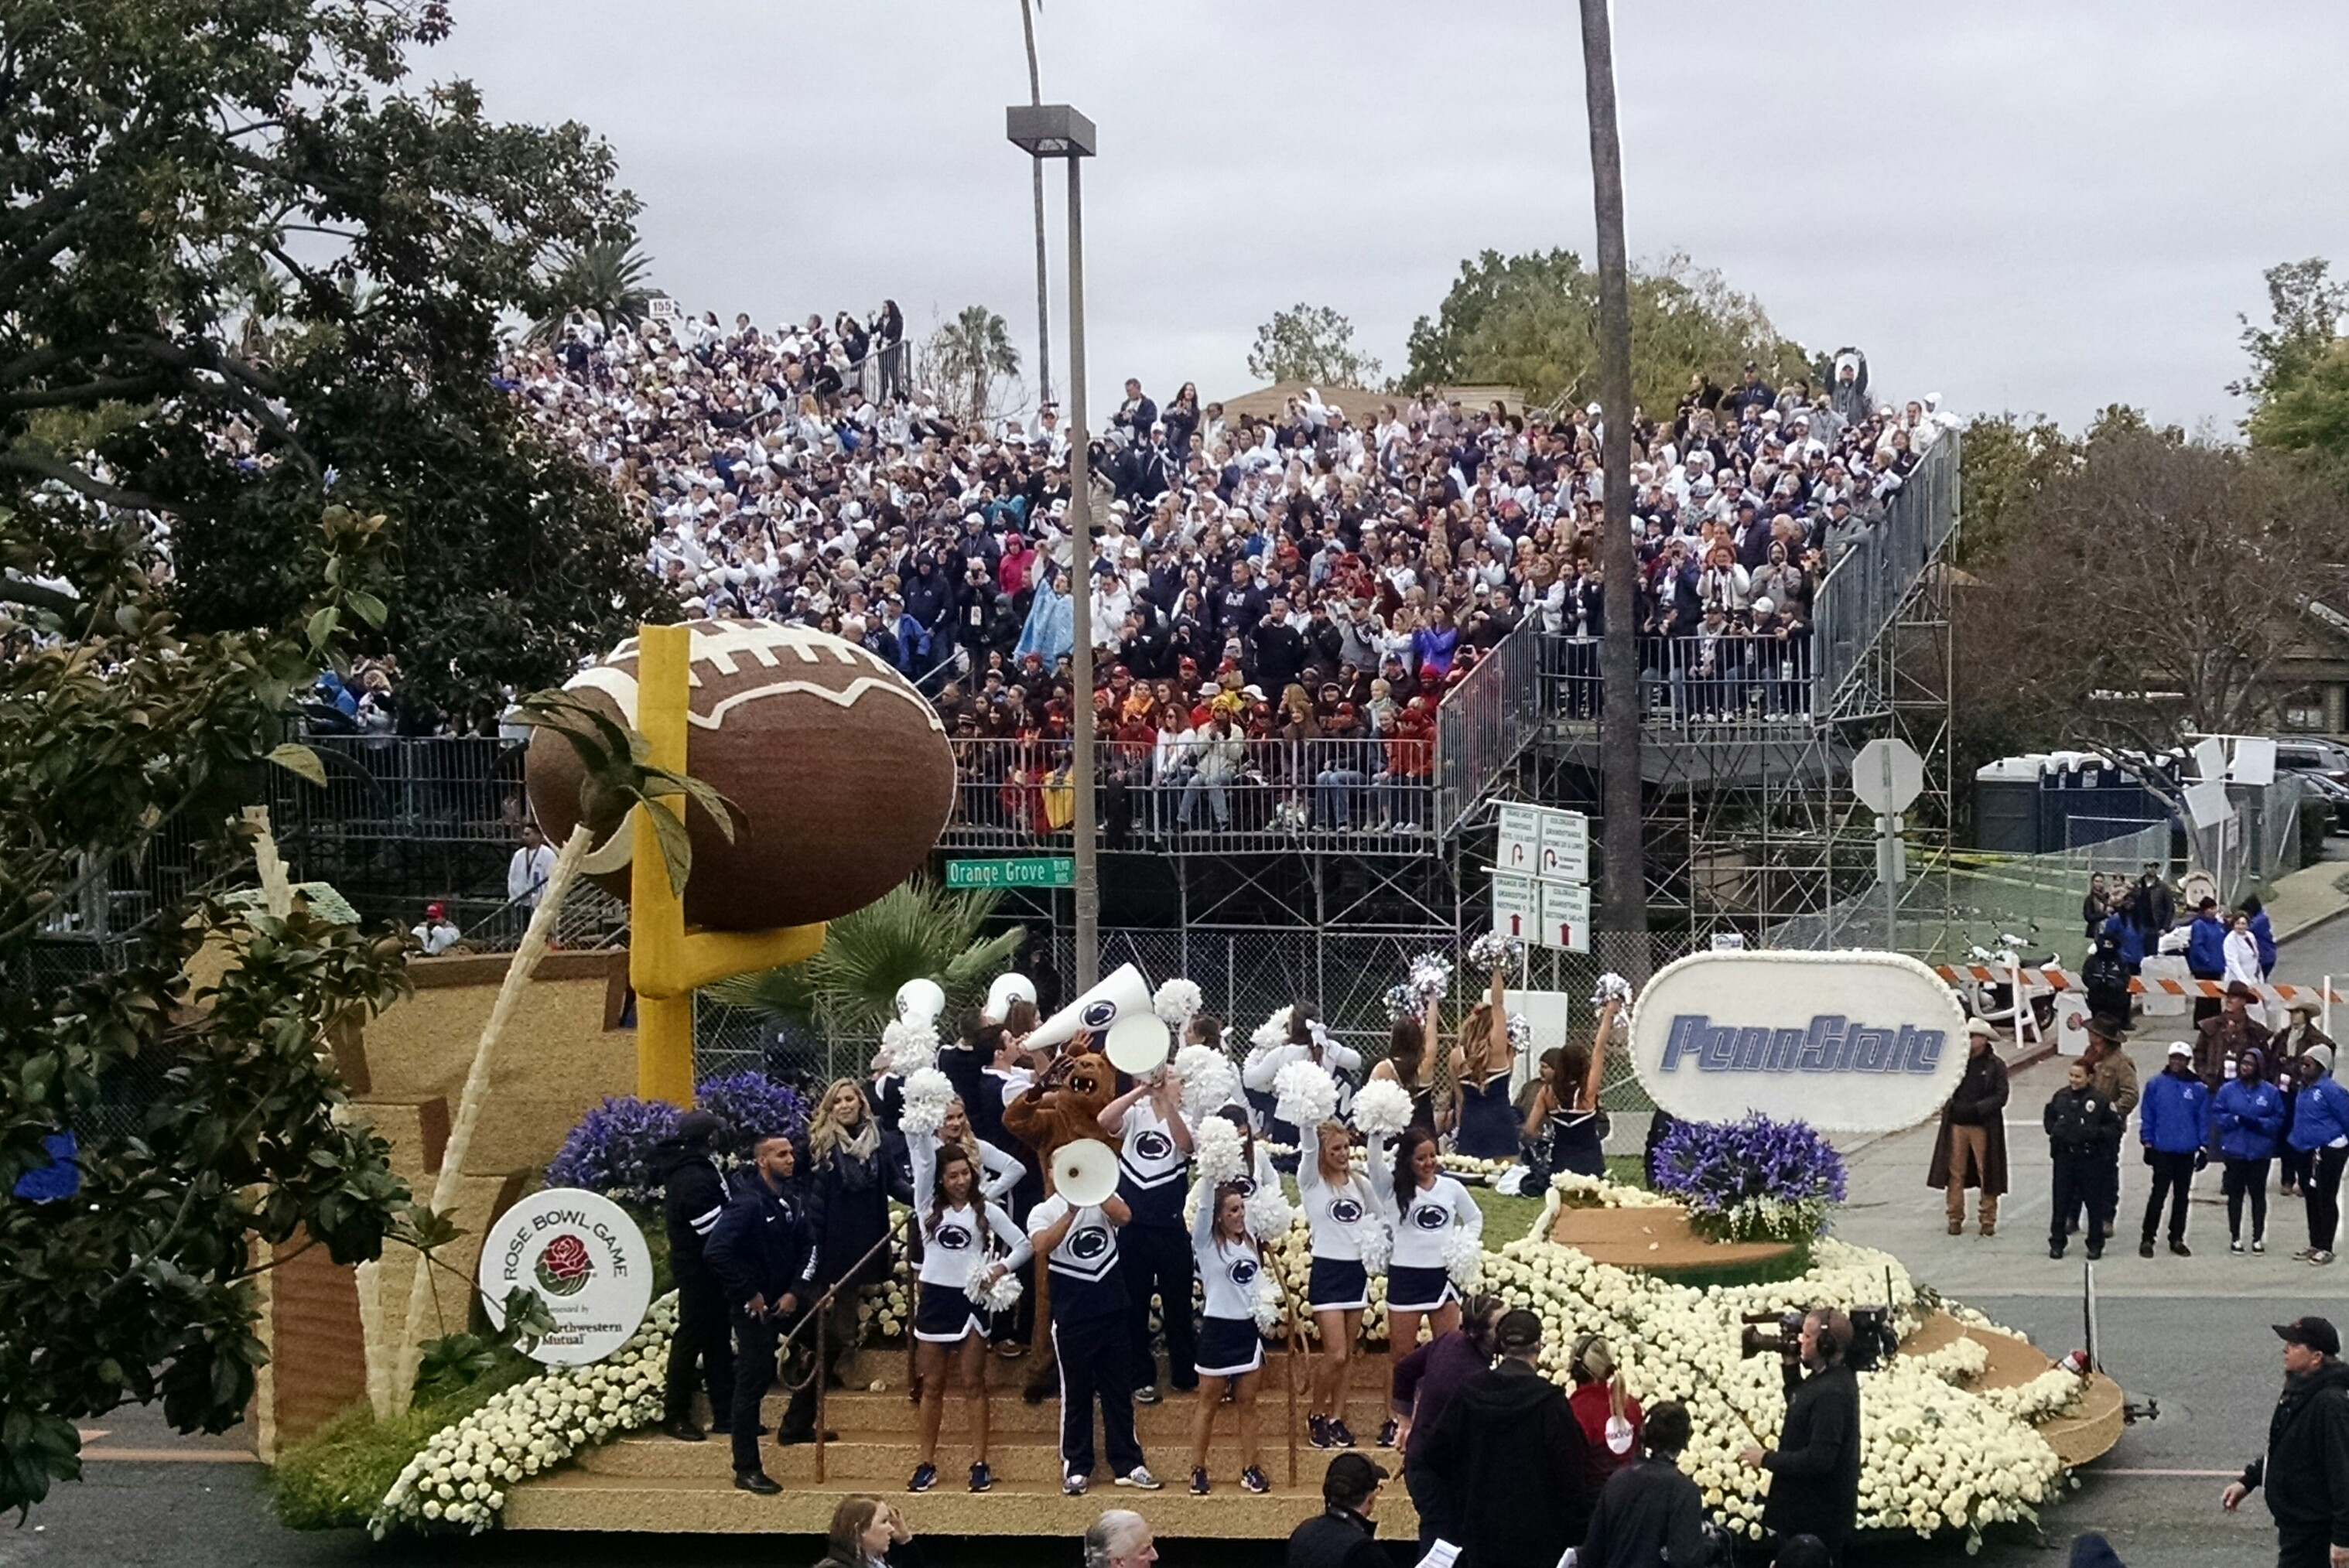 Penn State float at Rose Bowl parade